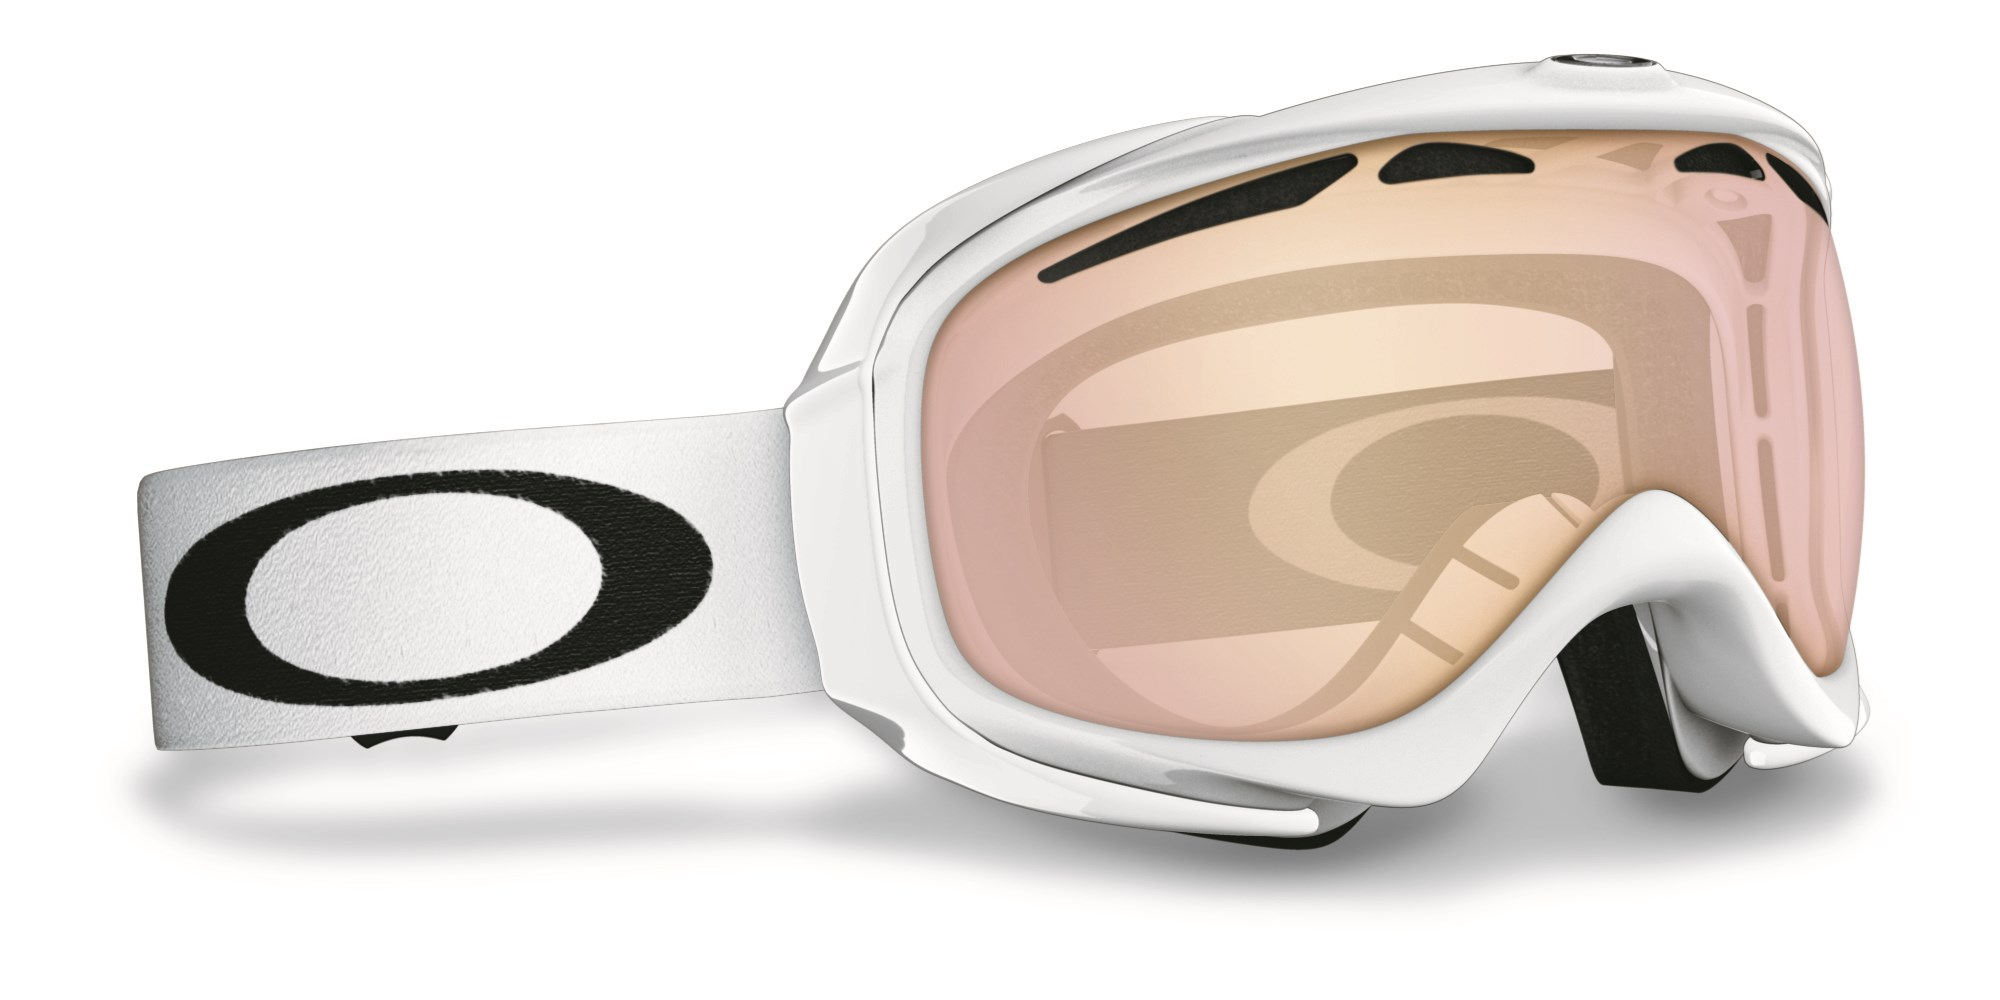 fedb5c3f1e Oakley Elevate Goggle White VR50 Pink Iridium. 0 (Be the first to add a  review!)